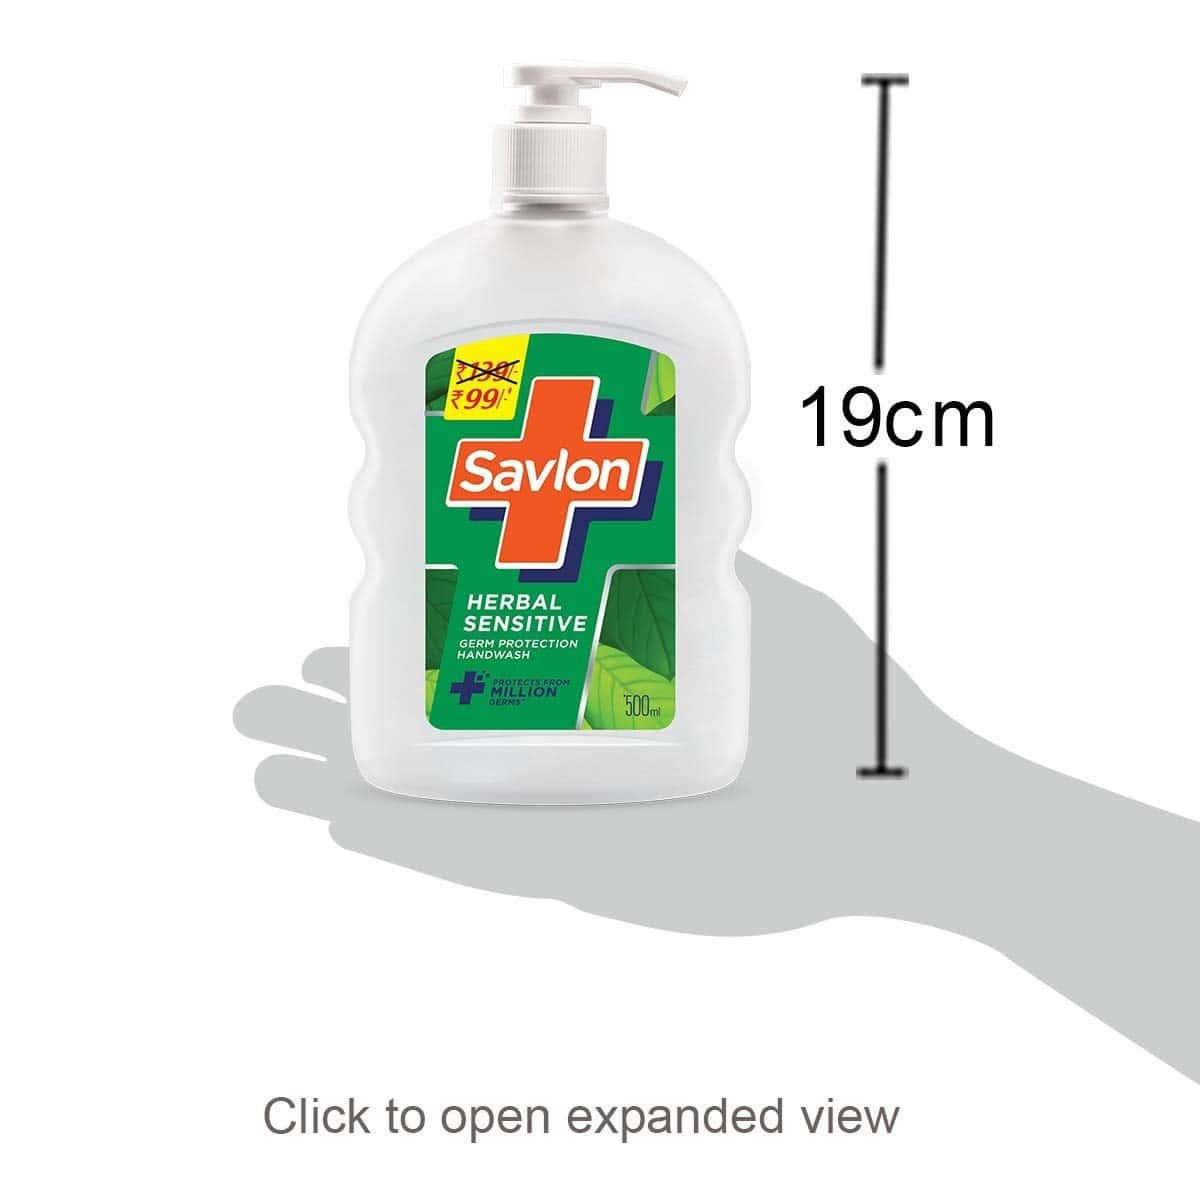 Savlon Herbal Sensitive  Handwash  Bottle Of 500 Ml